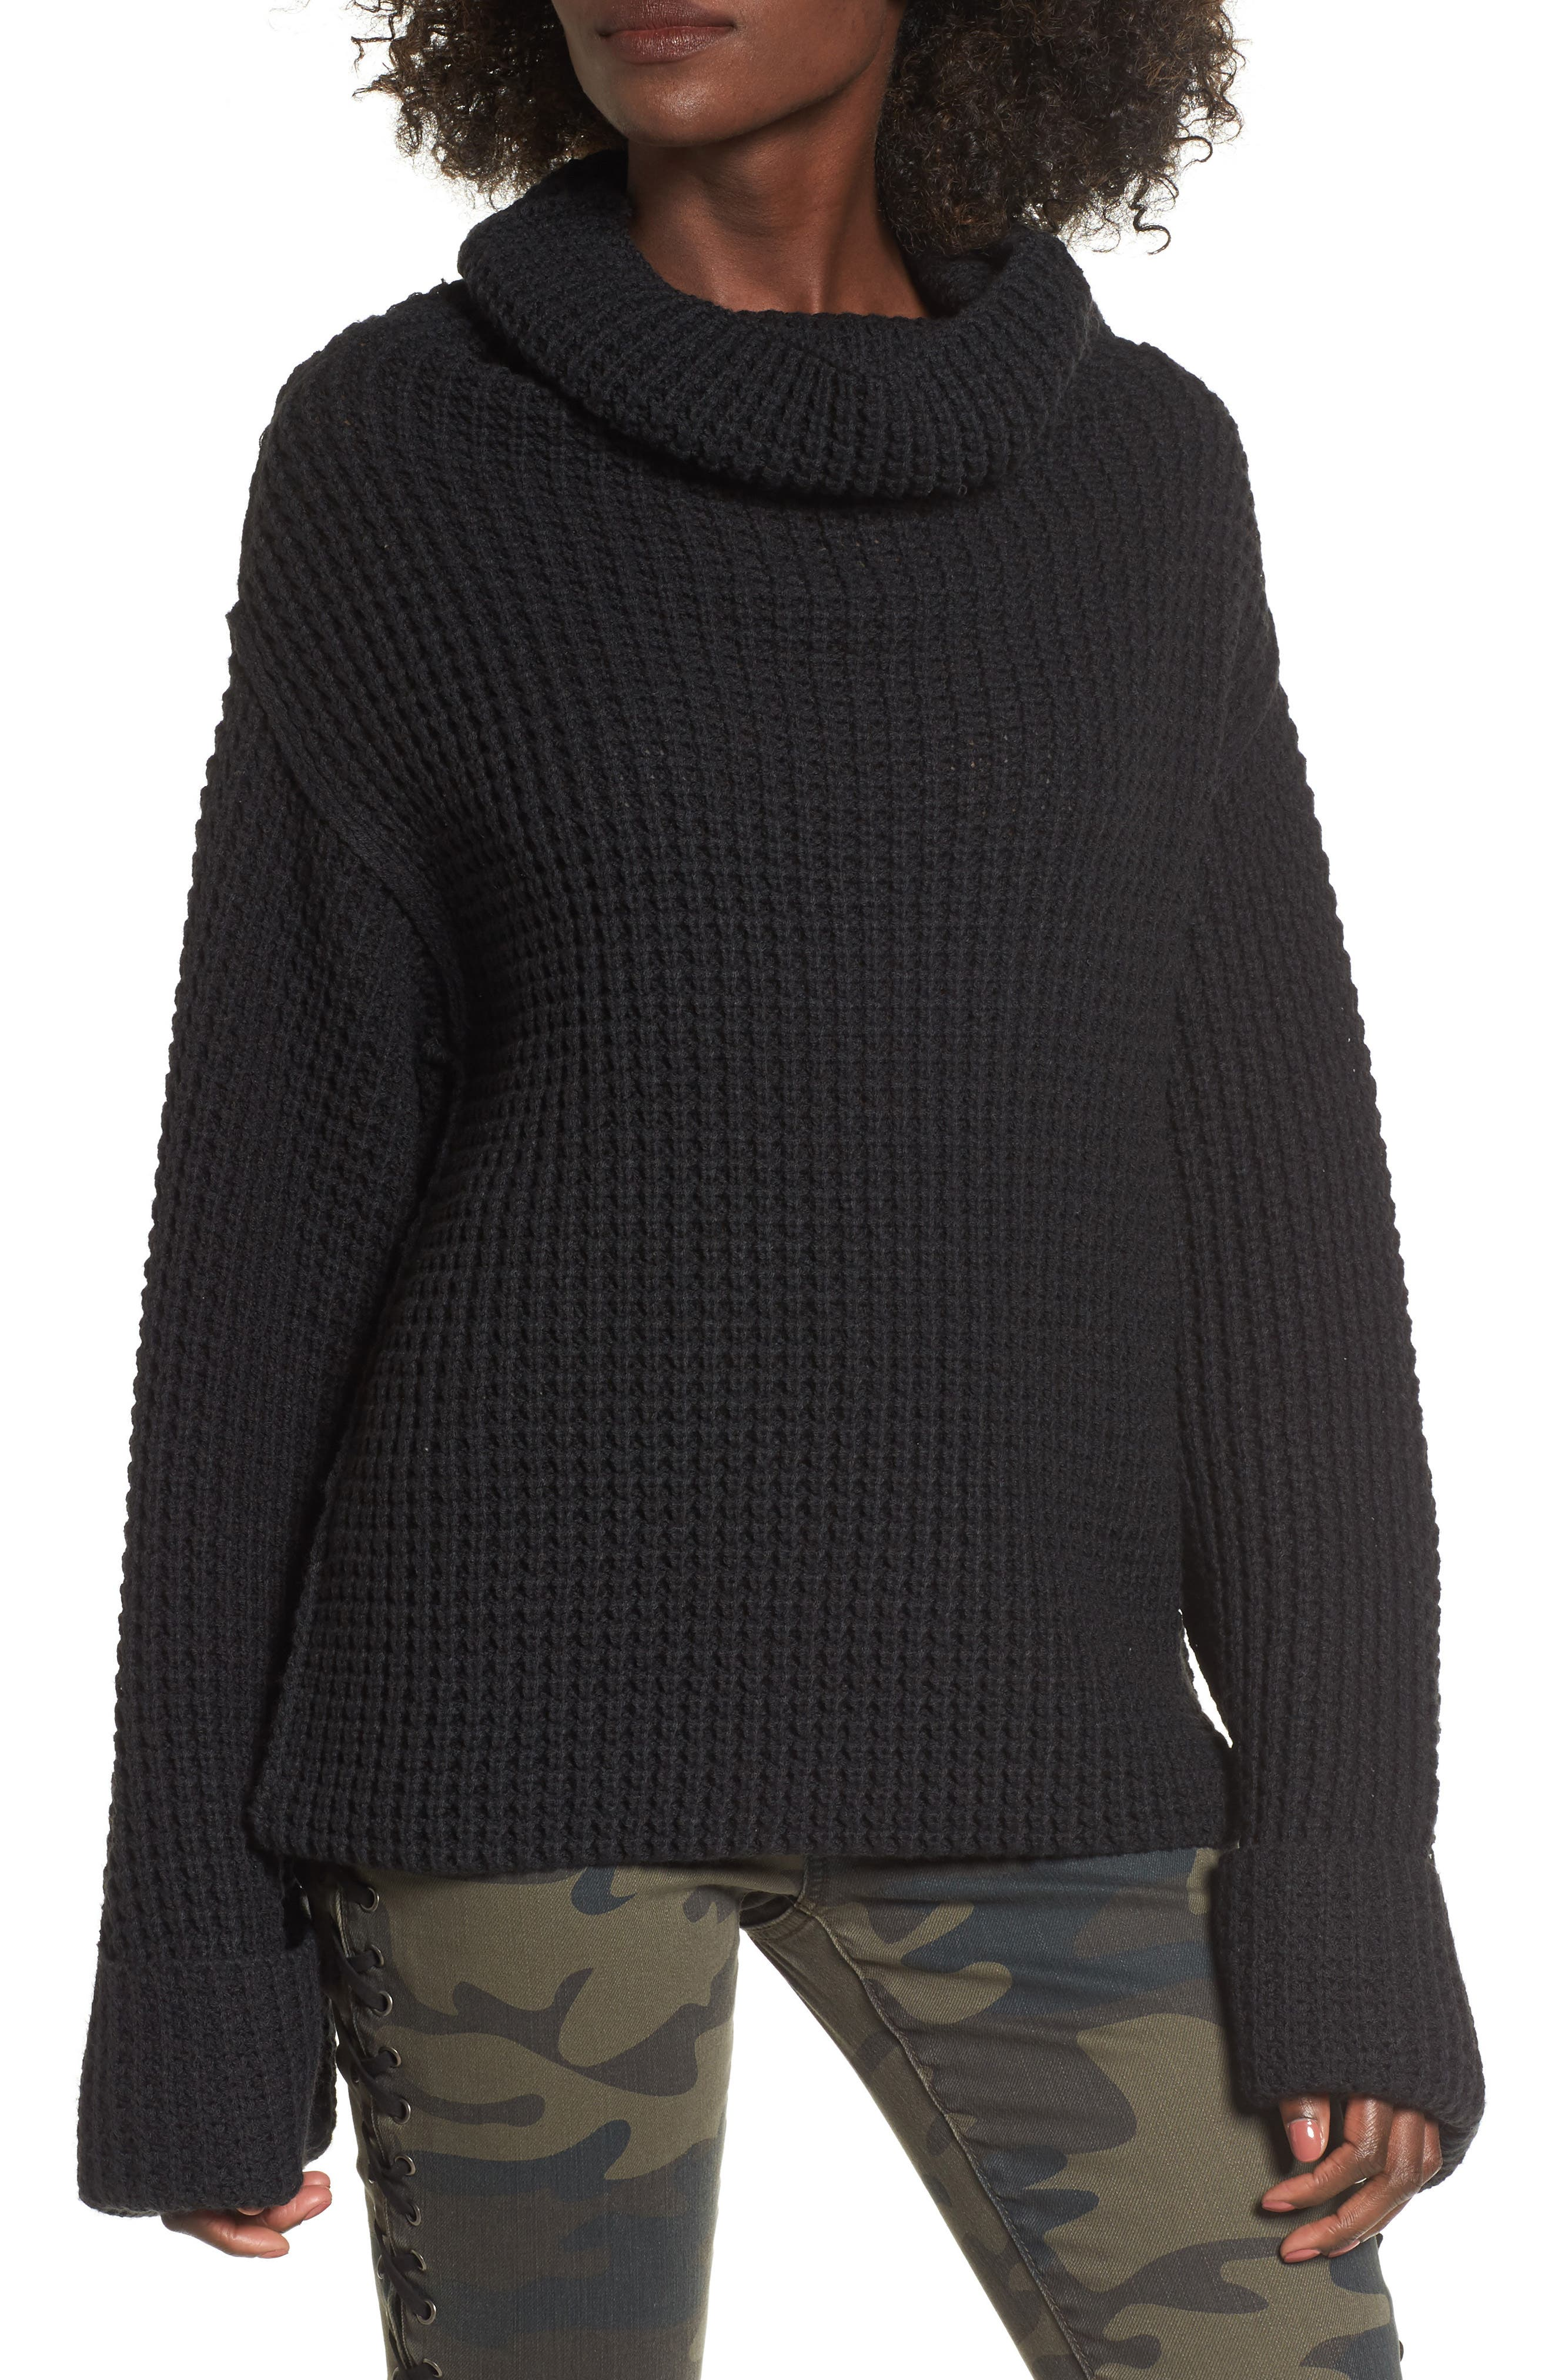 Cowl Neck Thermal Stitch Sweater,                             Main thumbnail 1, color,                             001